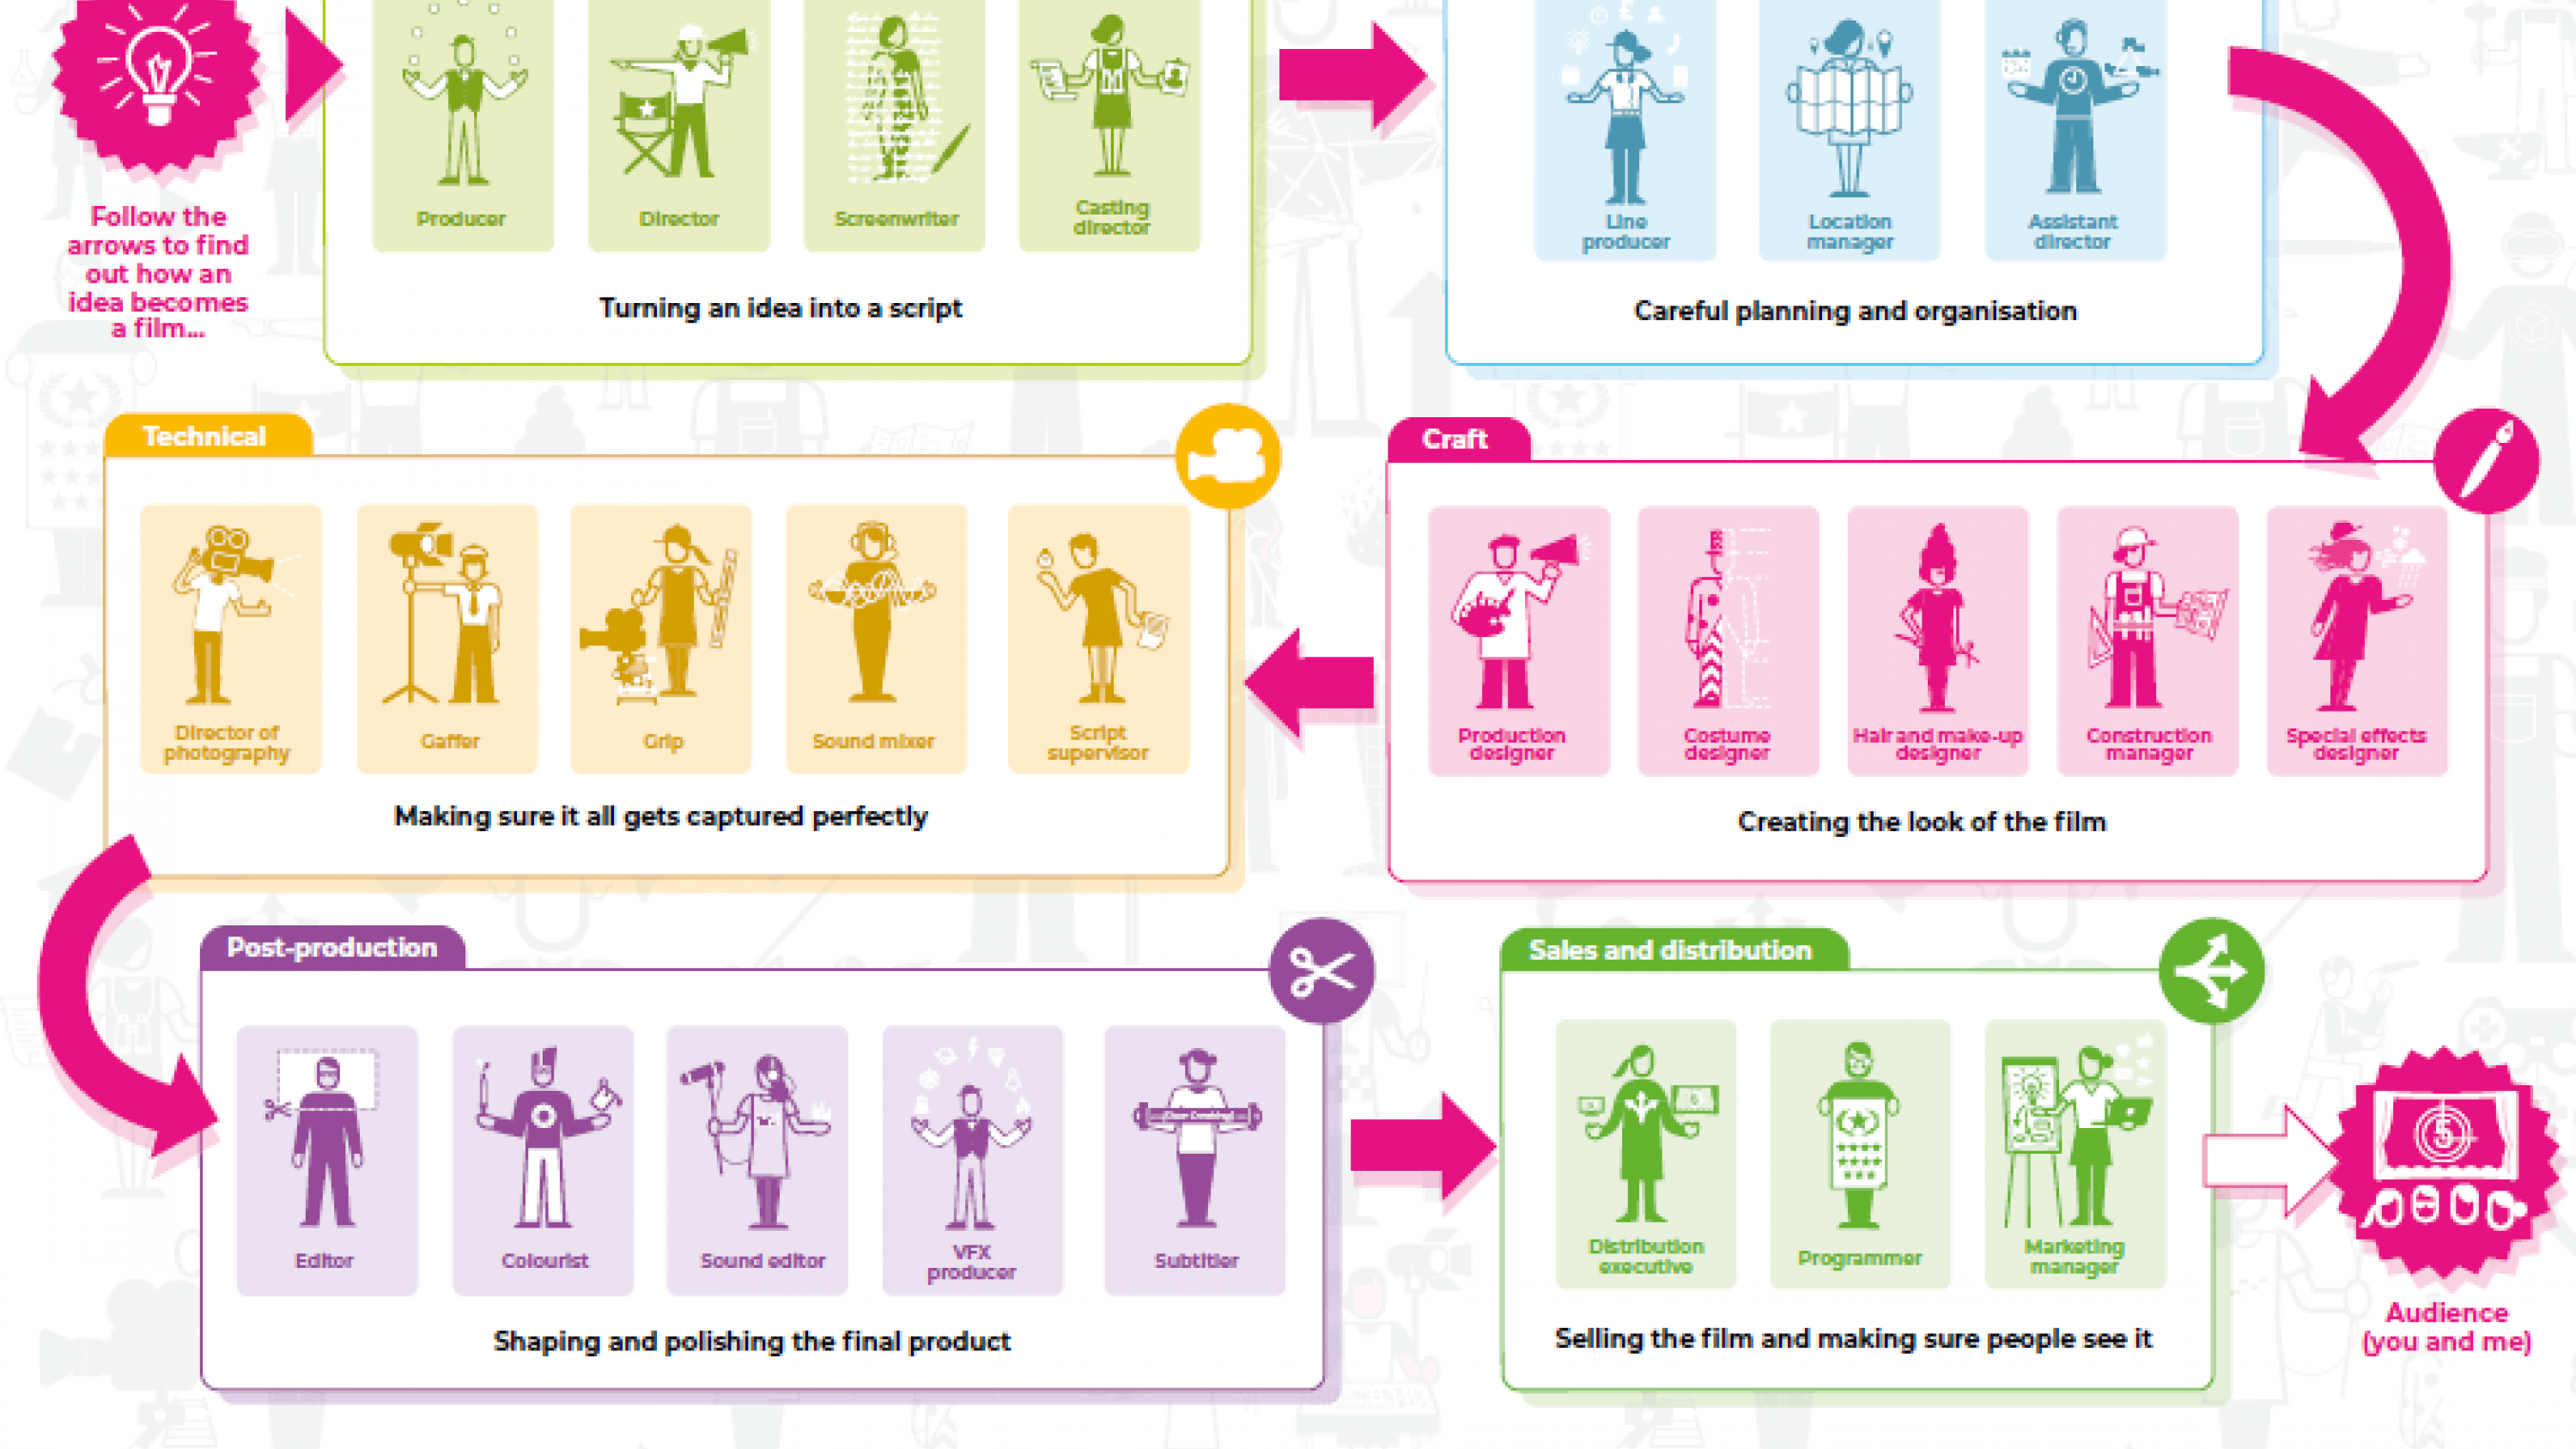 Image of careers map